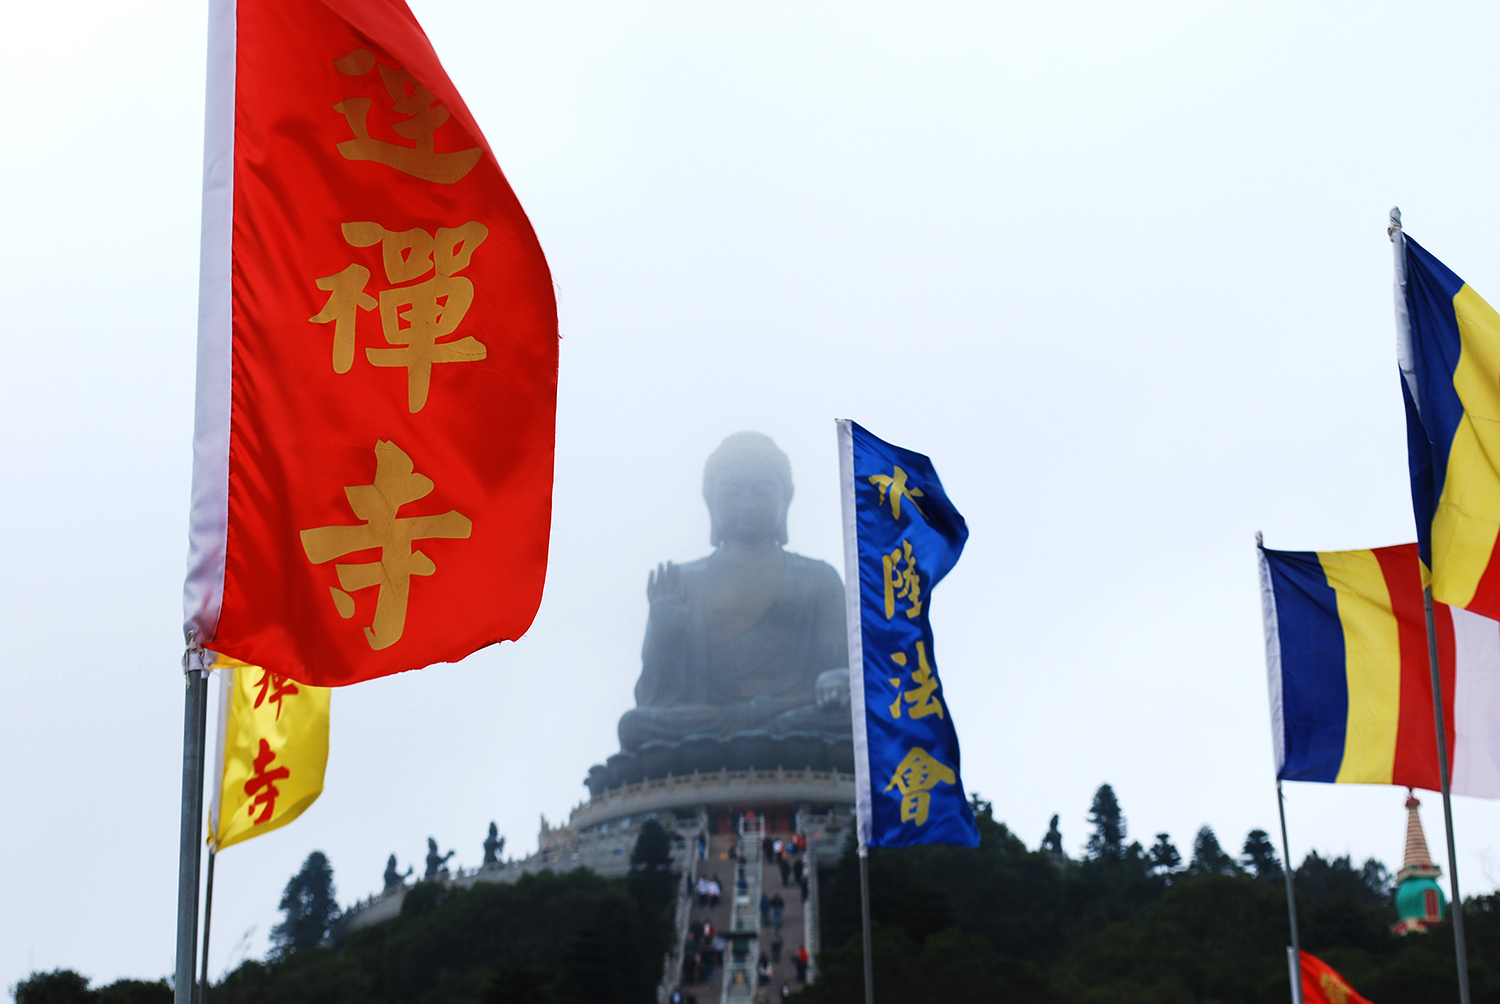 Tian Tan Boeddha Hong Kong HK travel reizen must see must do holiday city trip review my way to the top the biggest lifestyle by linda reizen